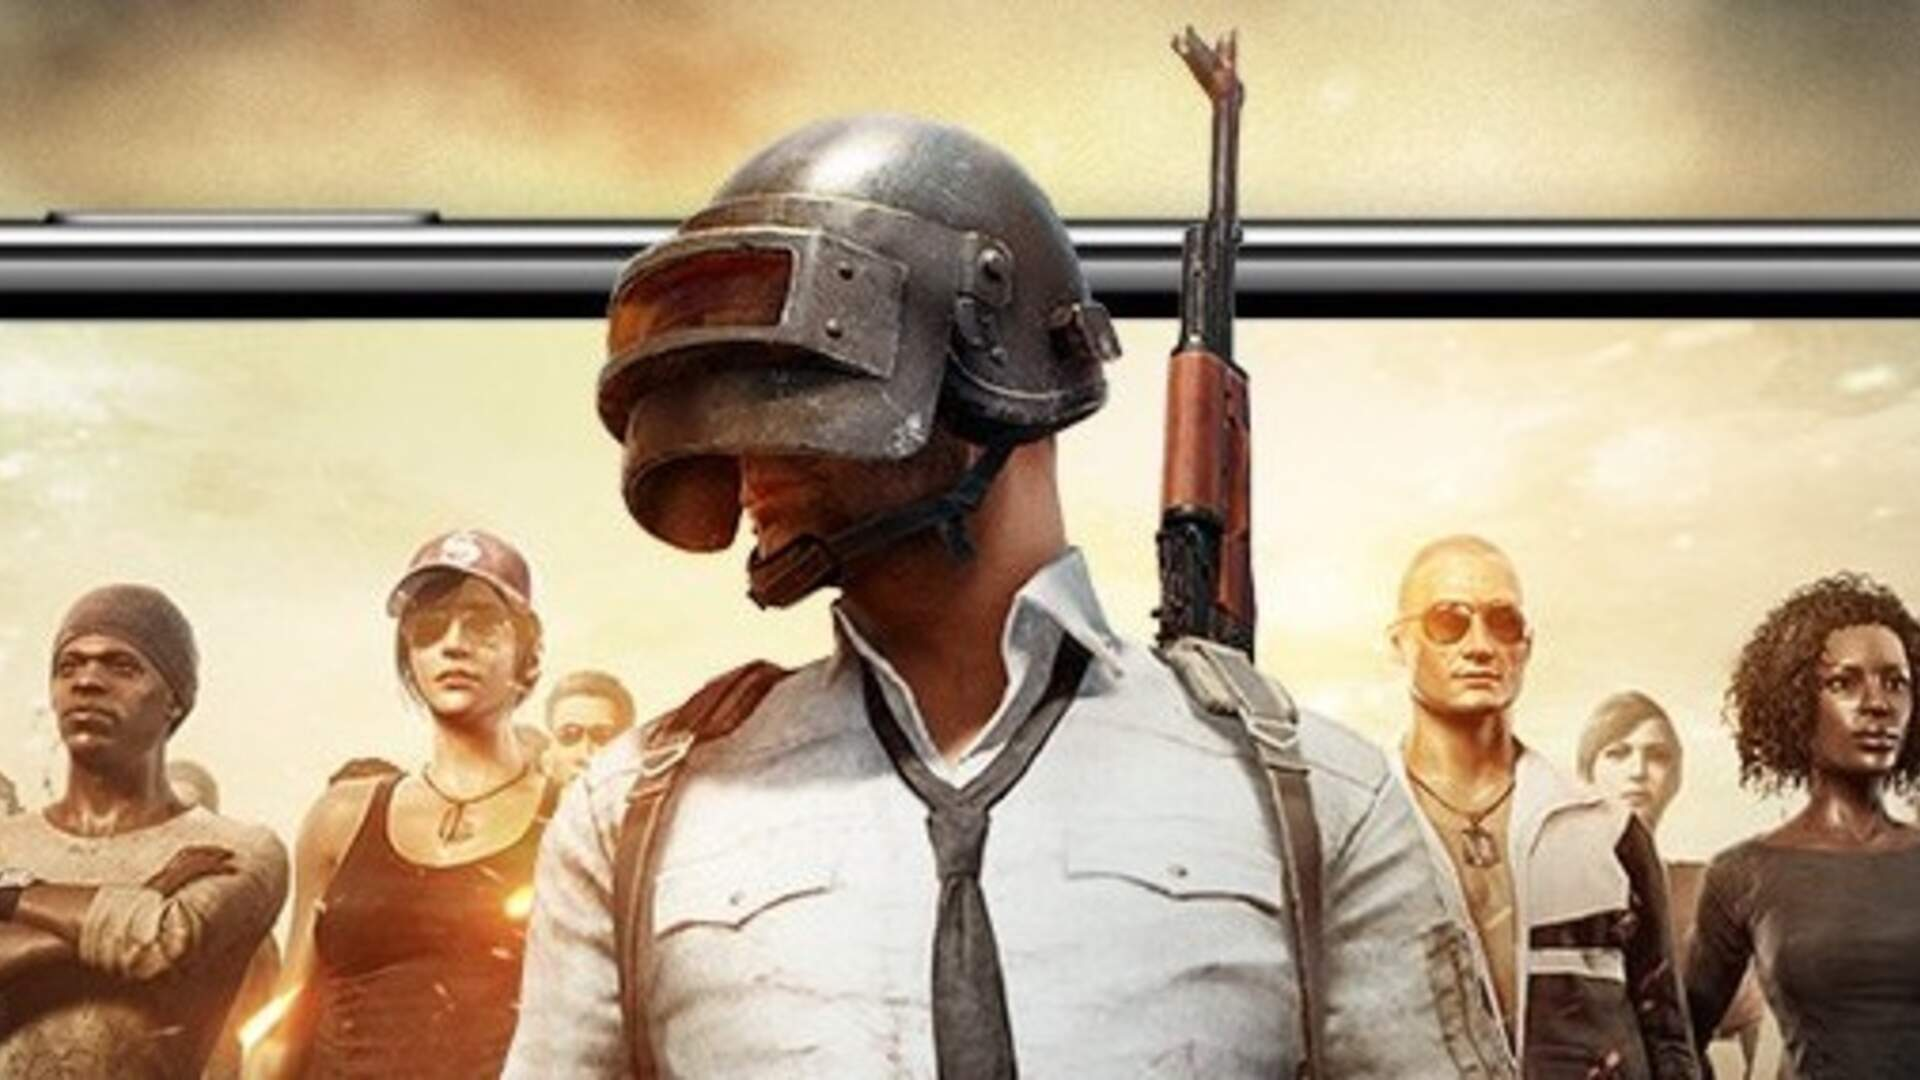 PUBG Mobile Now Has First-Person Mode on iOS and Android